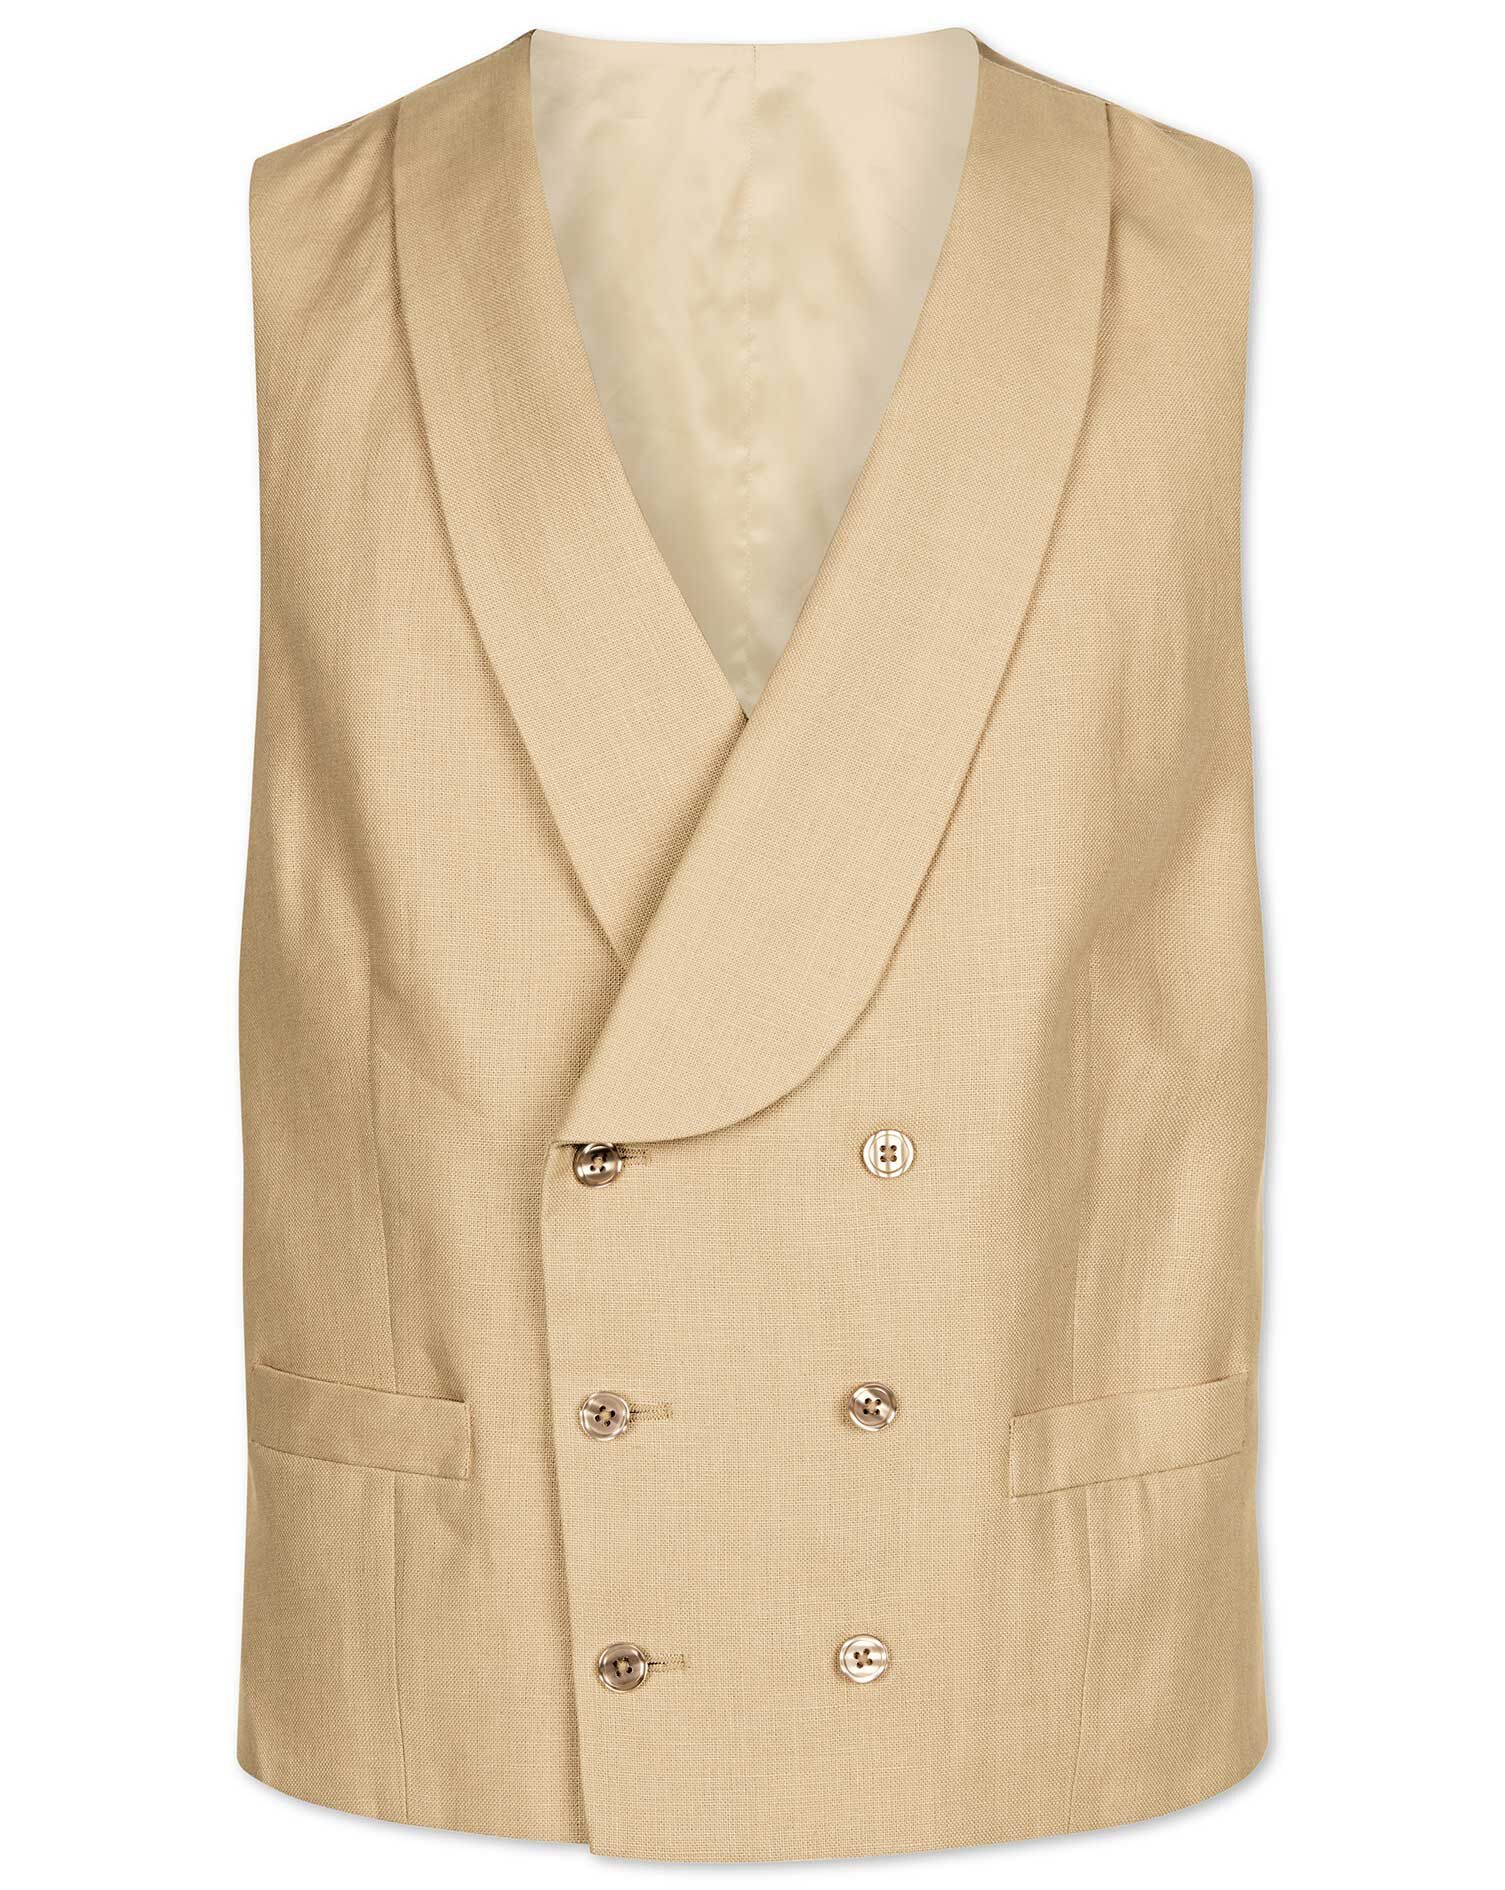 1920s Style Mens Vests Buff Linen Morning Suit Waistcoat Size w48 by Charles Tyrwhitt £160.00 AT vintagedancer.com